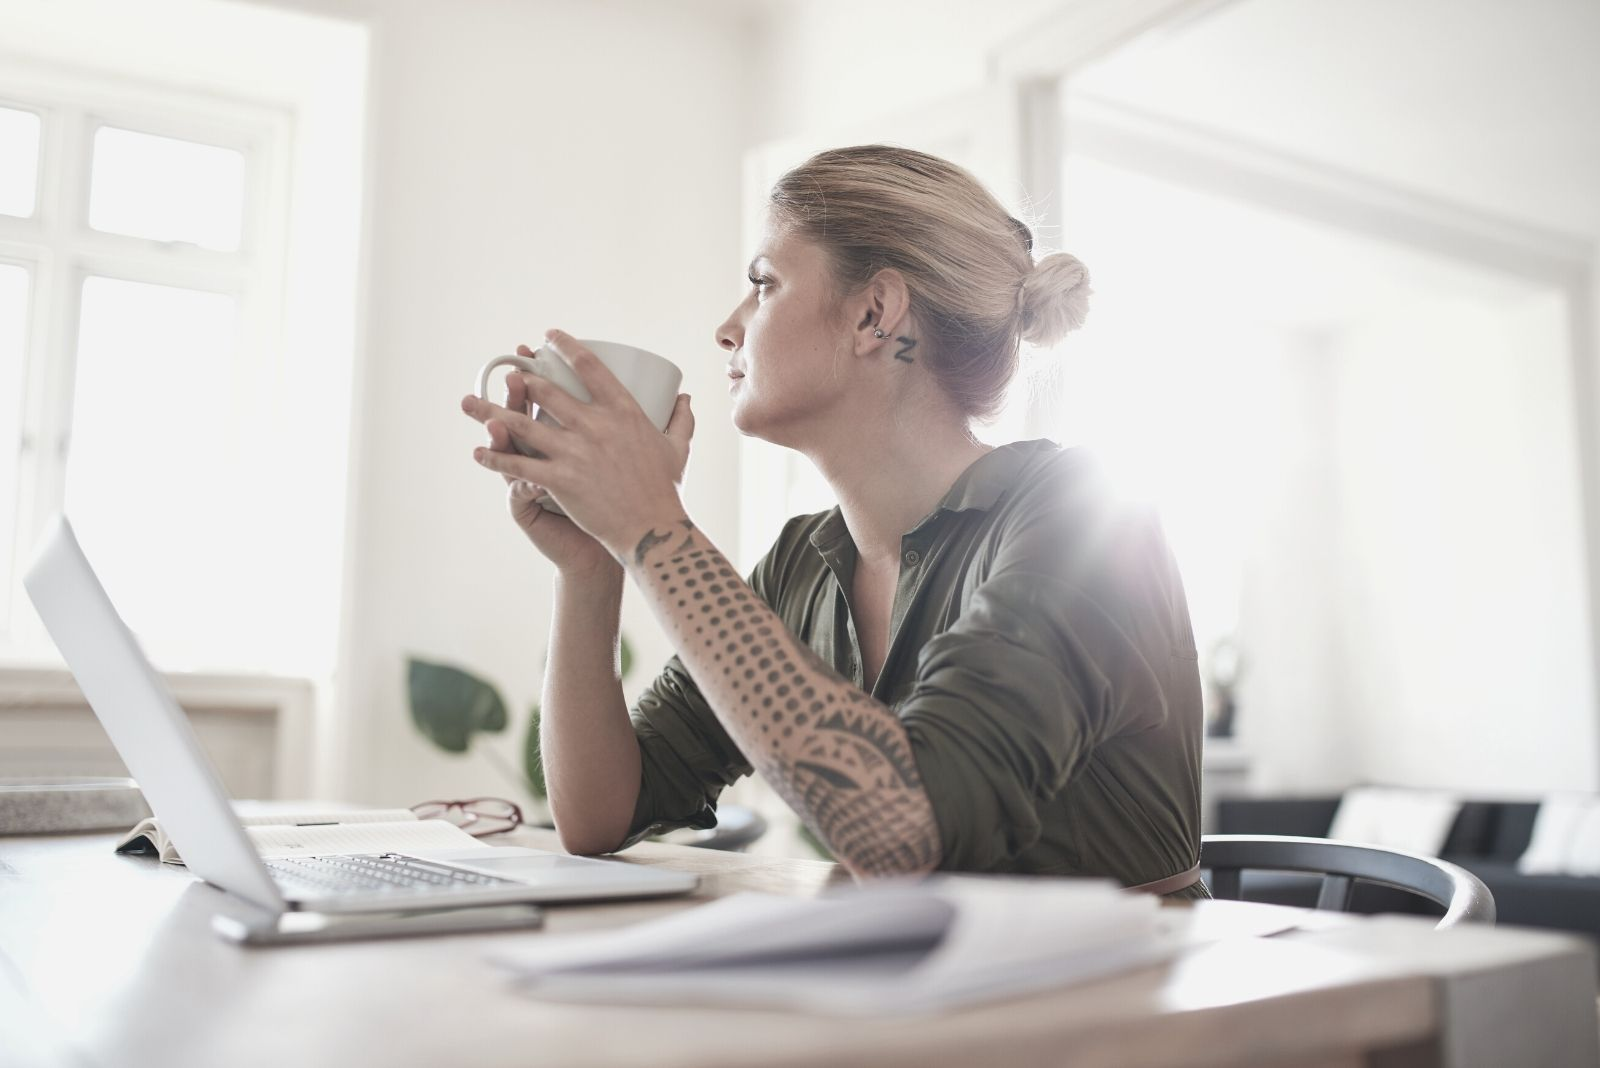 indoor shot of young woman drinking coffee sitting by the table